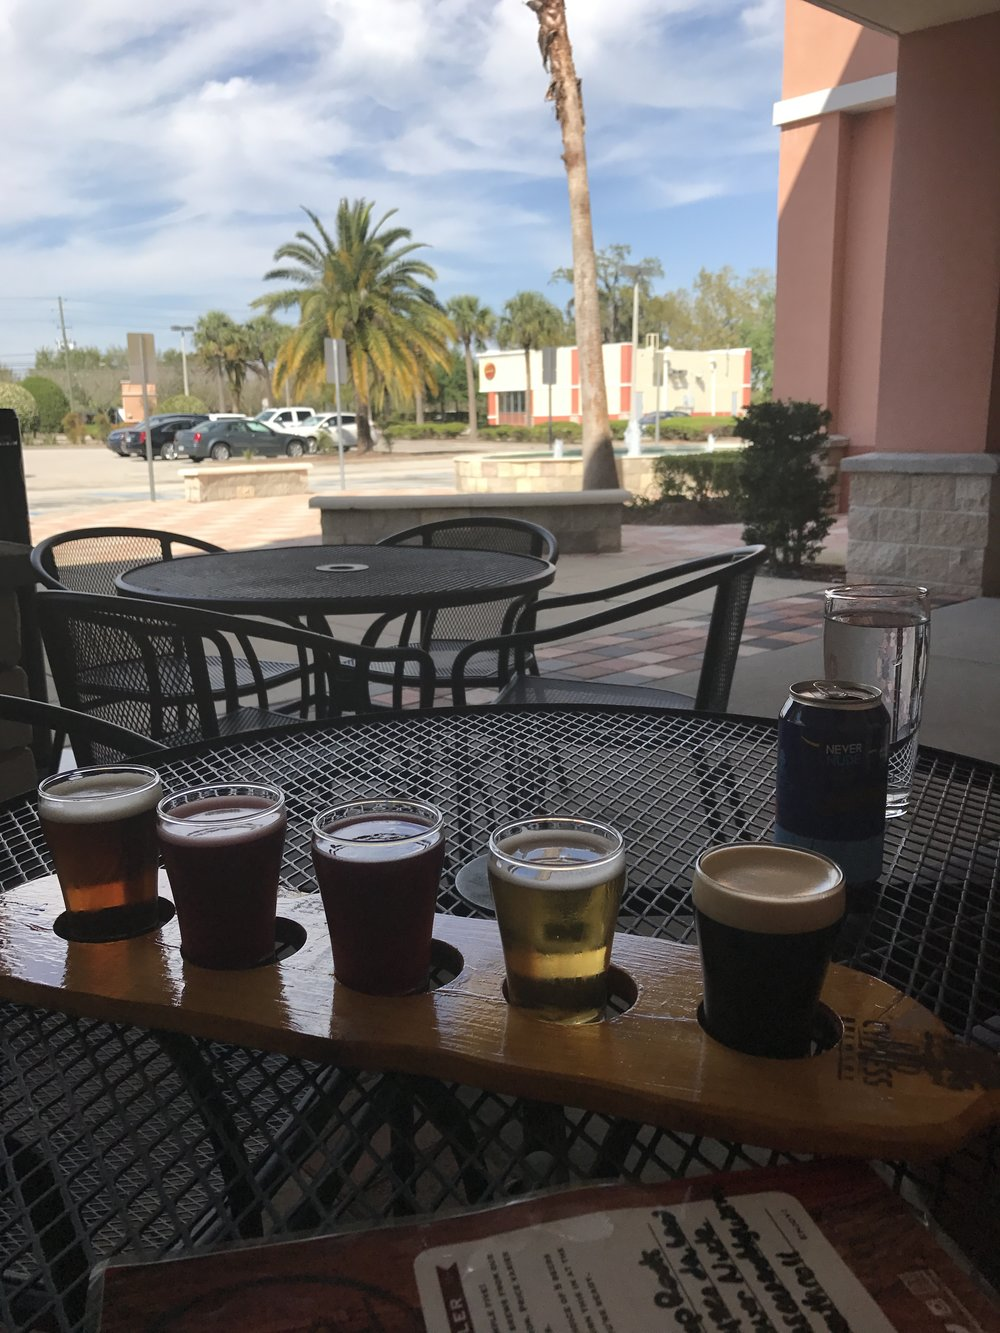 My flight at Red Cyprus Brewery yesterday afternoon. No filter necessary.